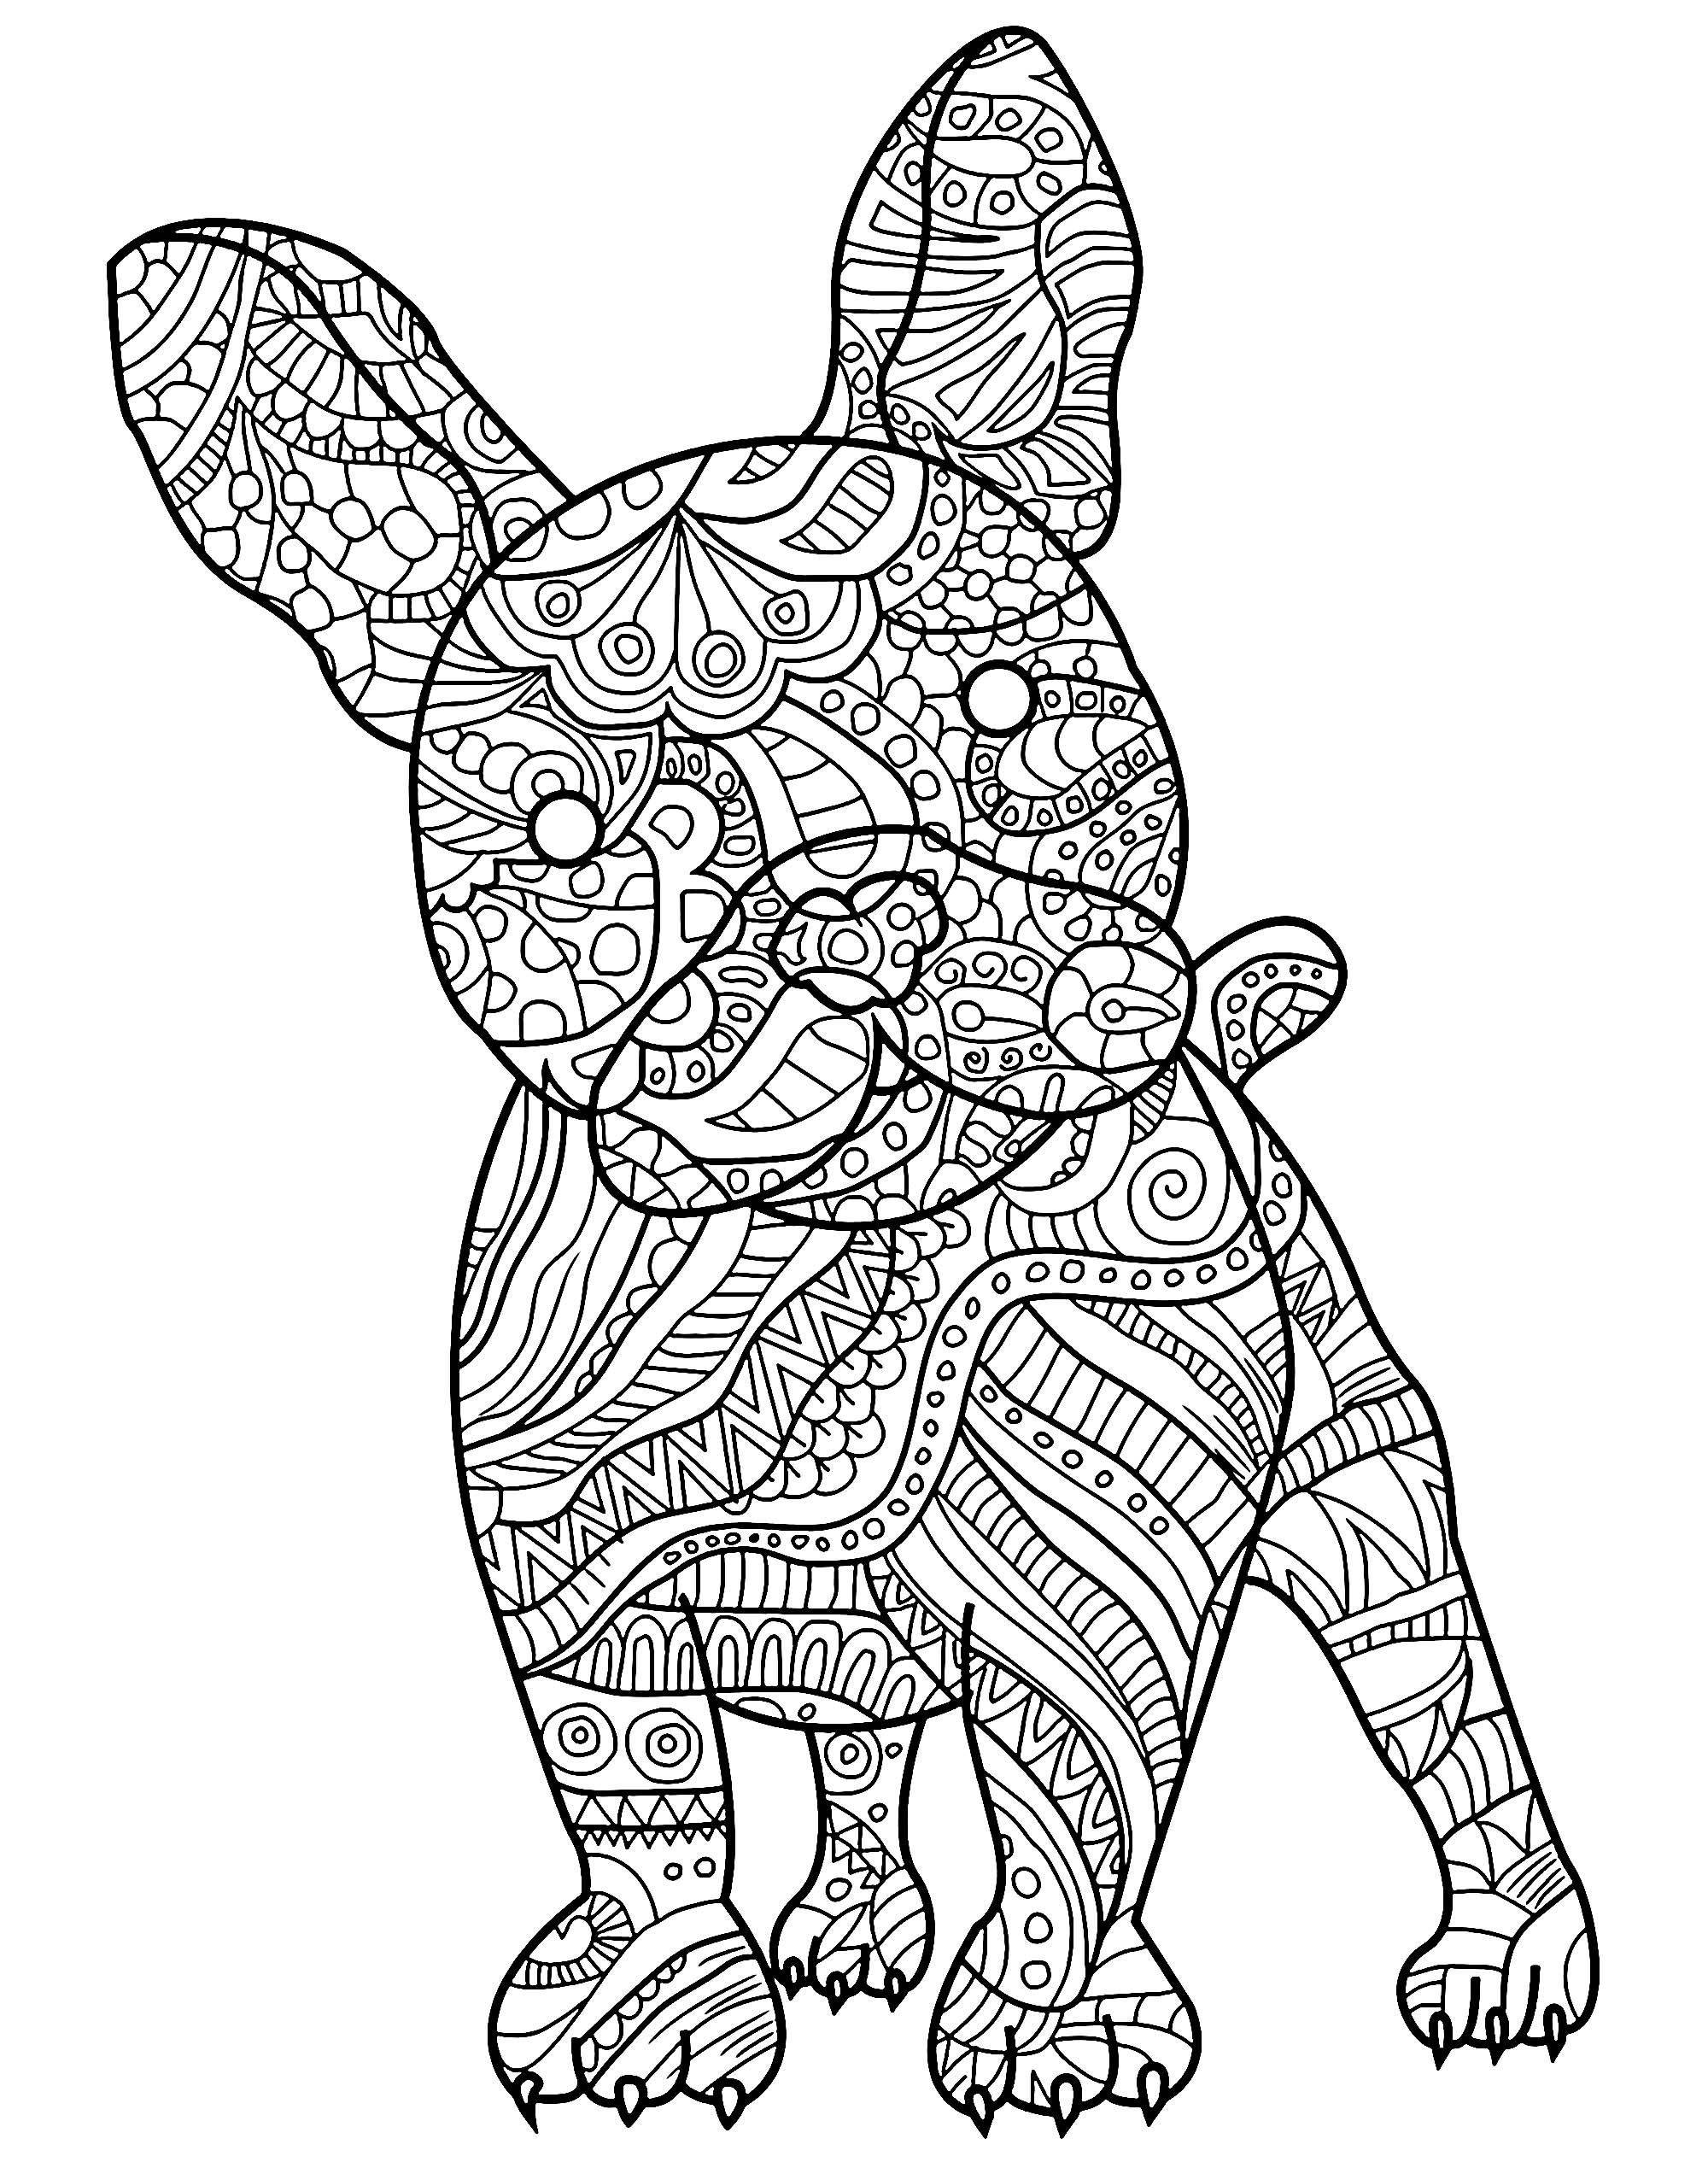 coloring sheet dog coloring sheet dog sheet coloring dog